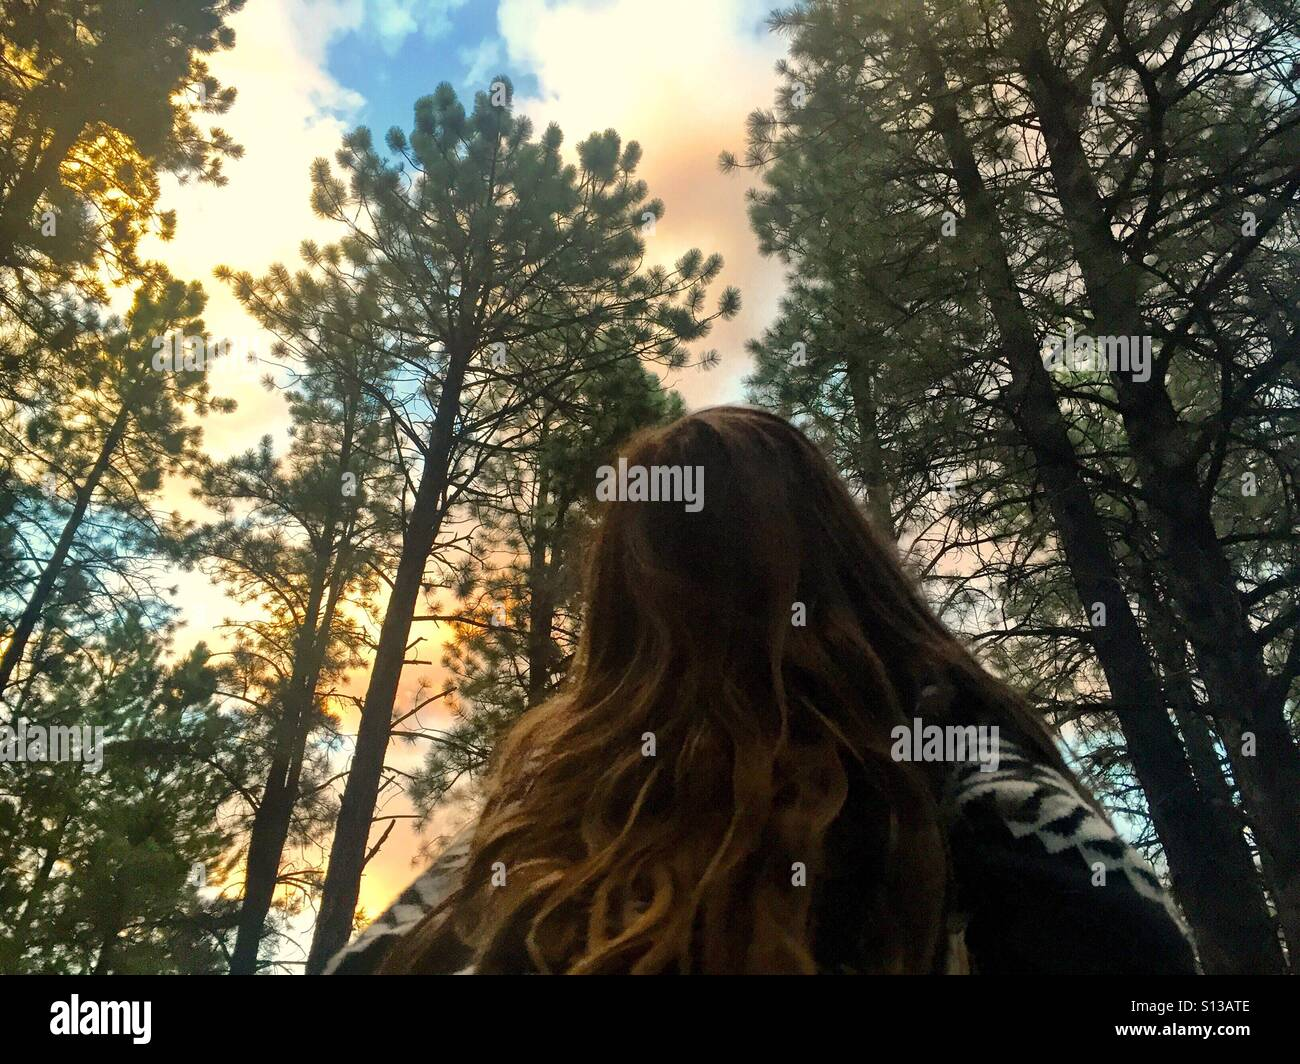 A child looks up at the forest canopy above her. - Stock Image